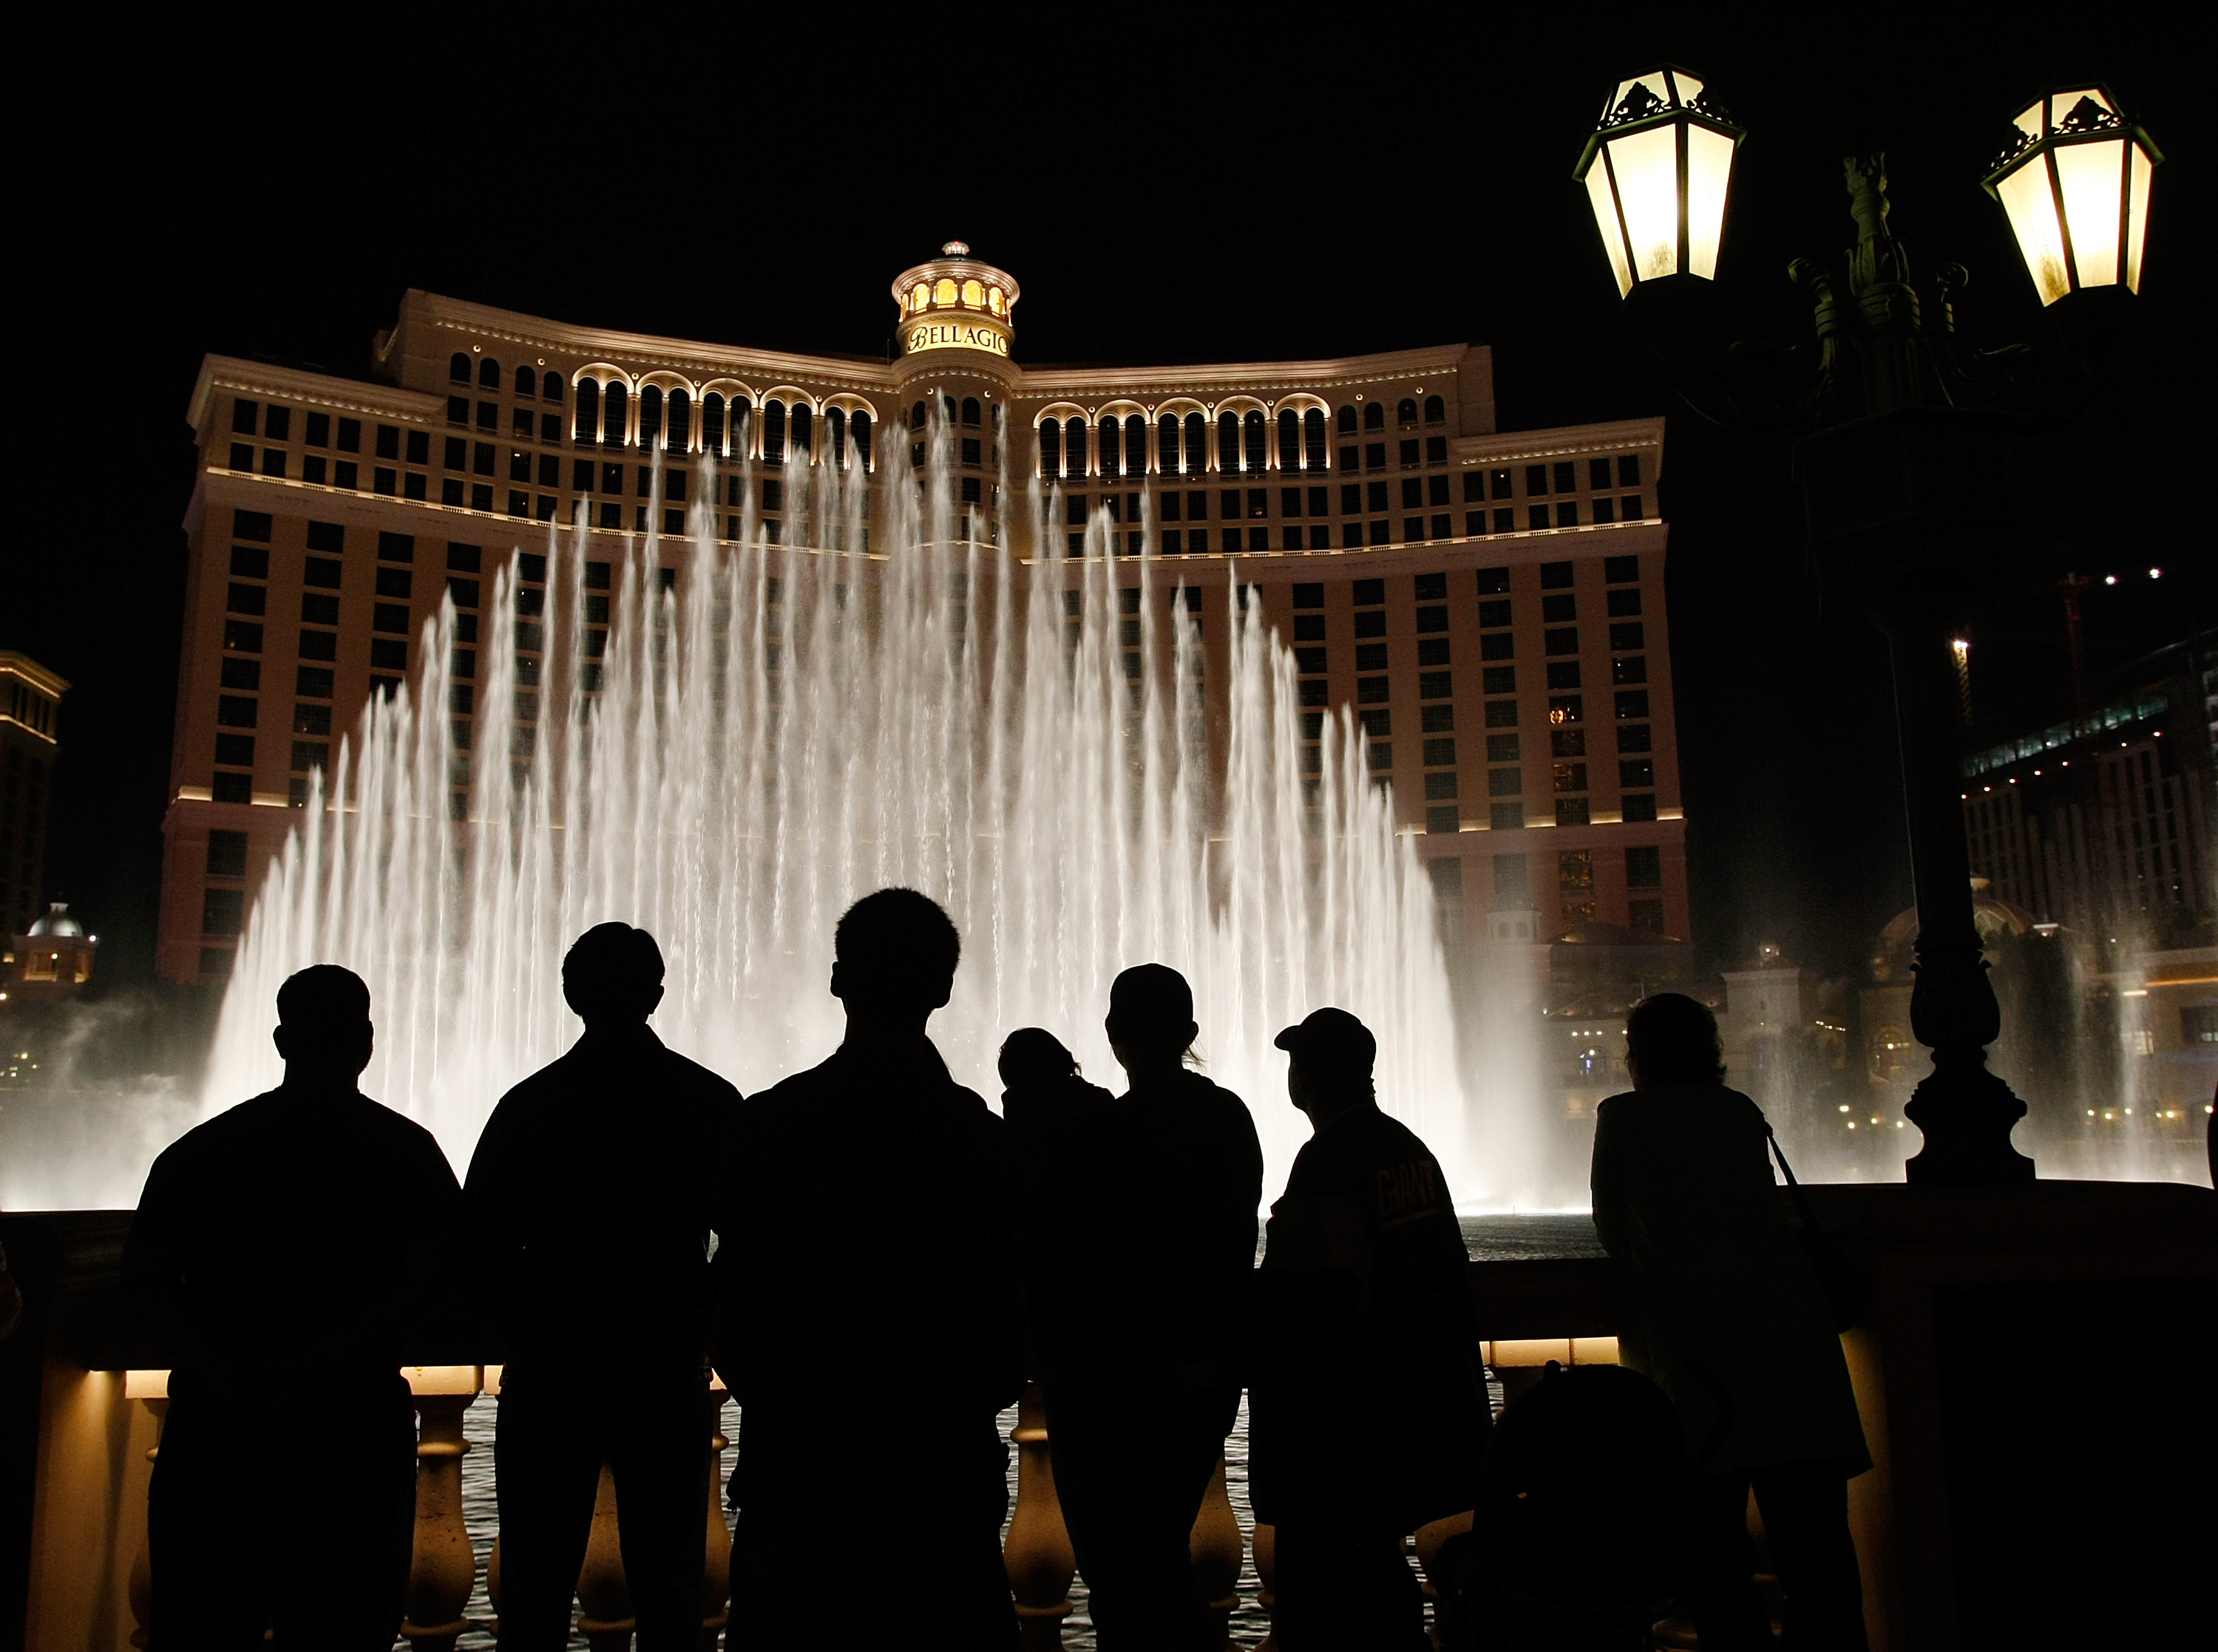 LAS VEGAS - NOVEMBER 24: Tourists are silhouetted as they watch the fountain show at the Bellagio November 24, 2008 in Las Vegas, Nevada. (Photo by Ethan Miller/Getty Images)